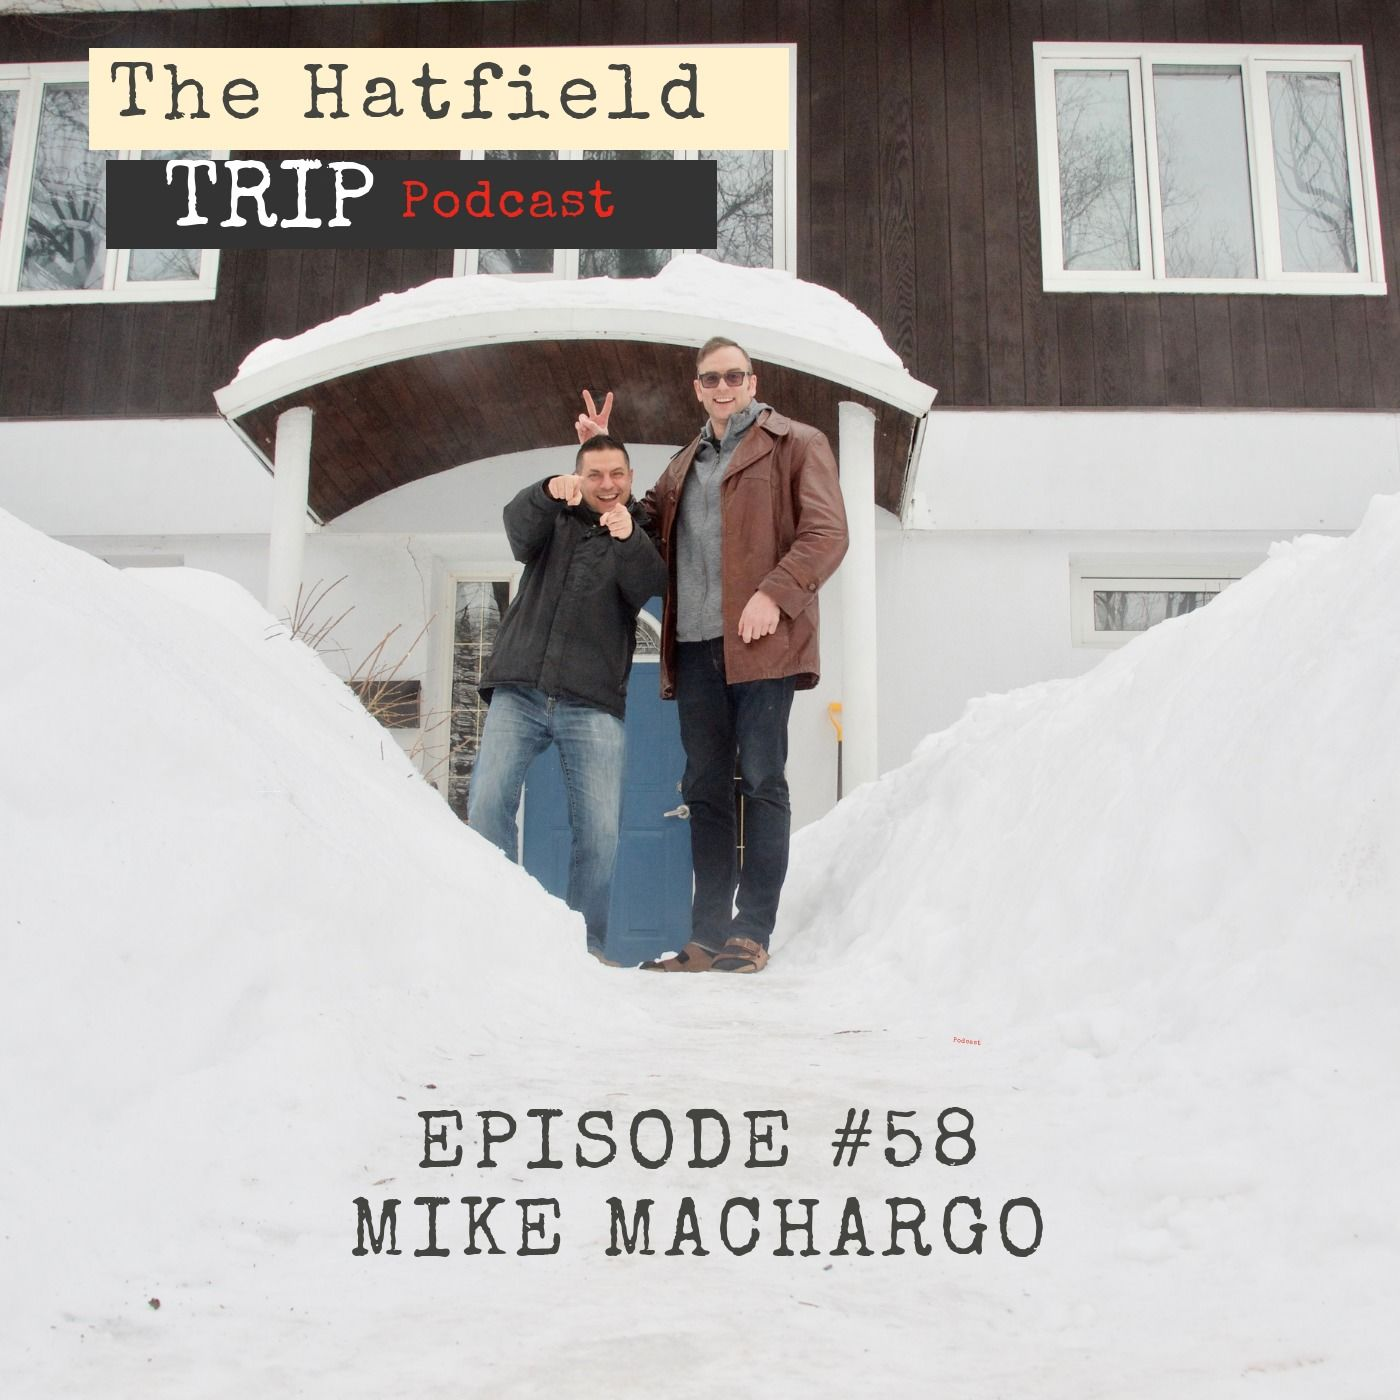 Episode #58 Mike Machargo